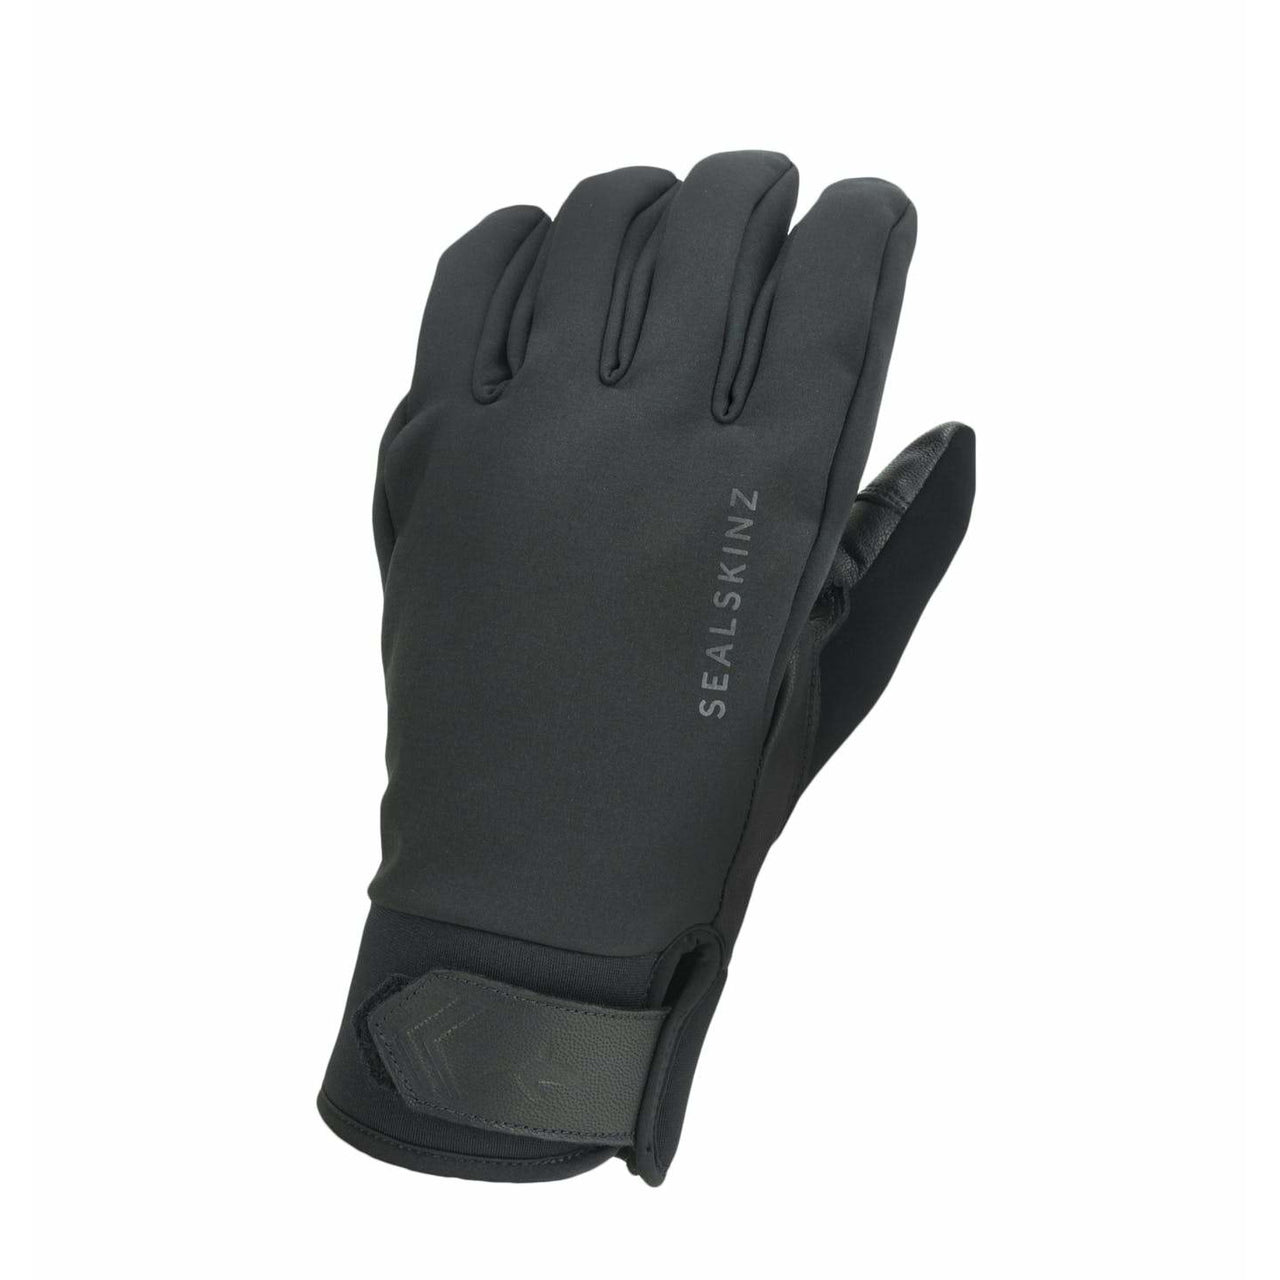 Sealskinz WP All Weather Insulated Glove